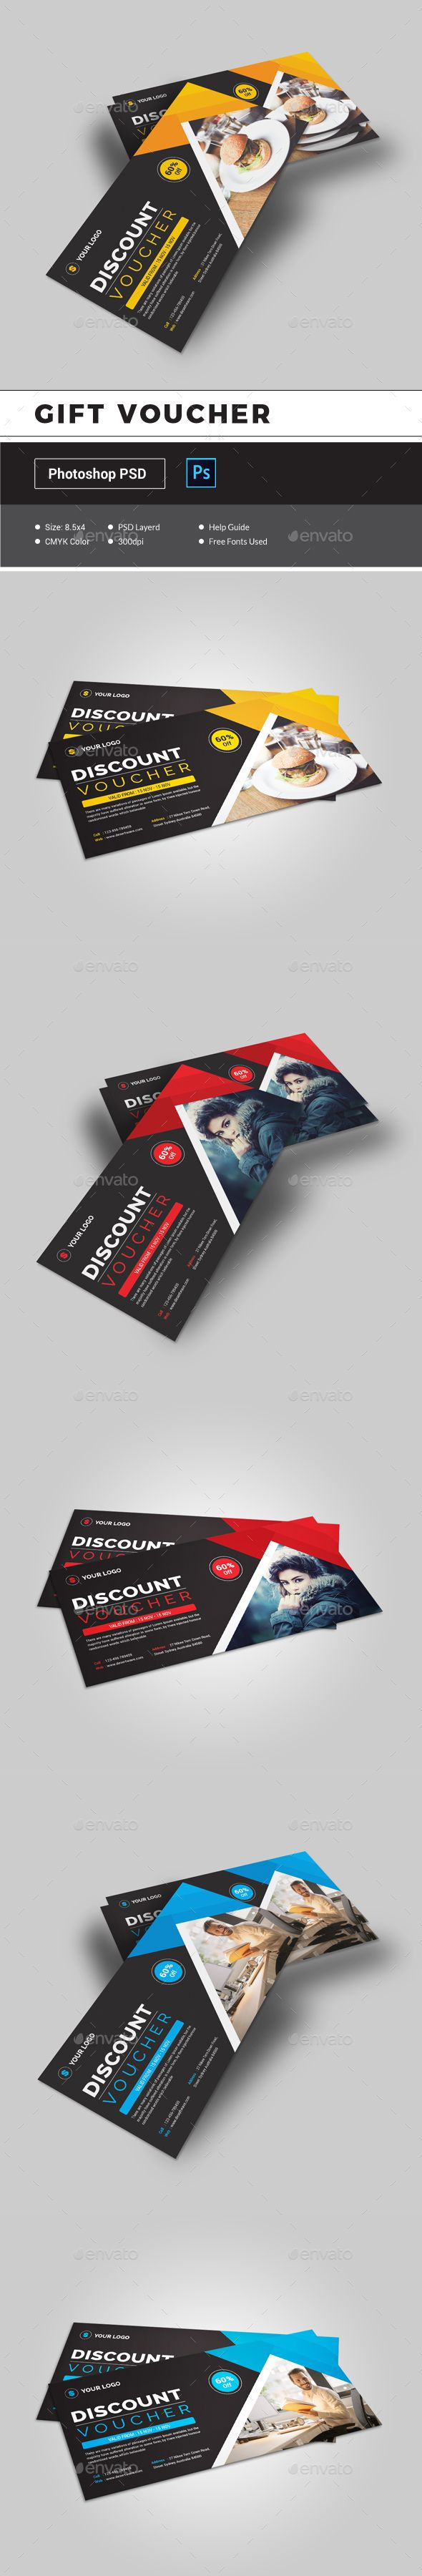 Gift Voucher Template PSD. Download (With images) Gift